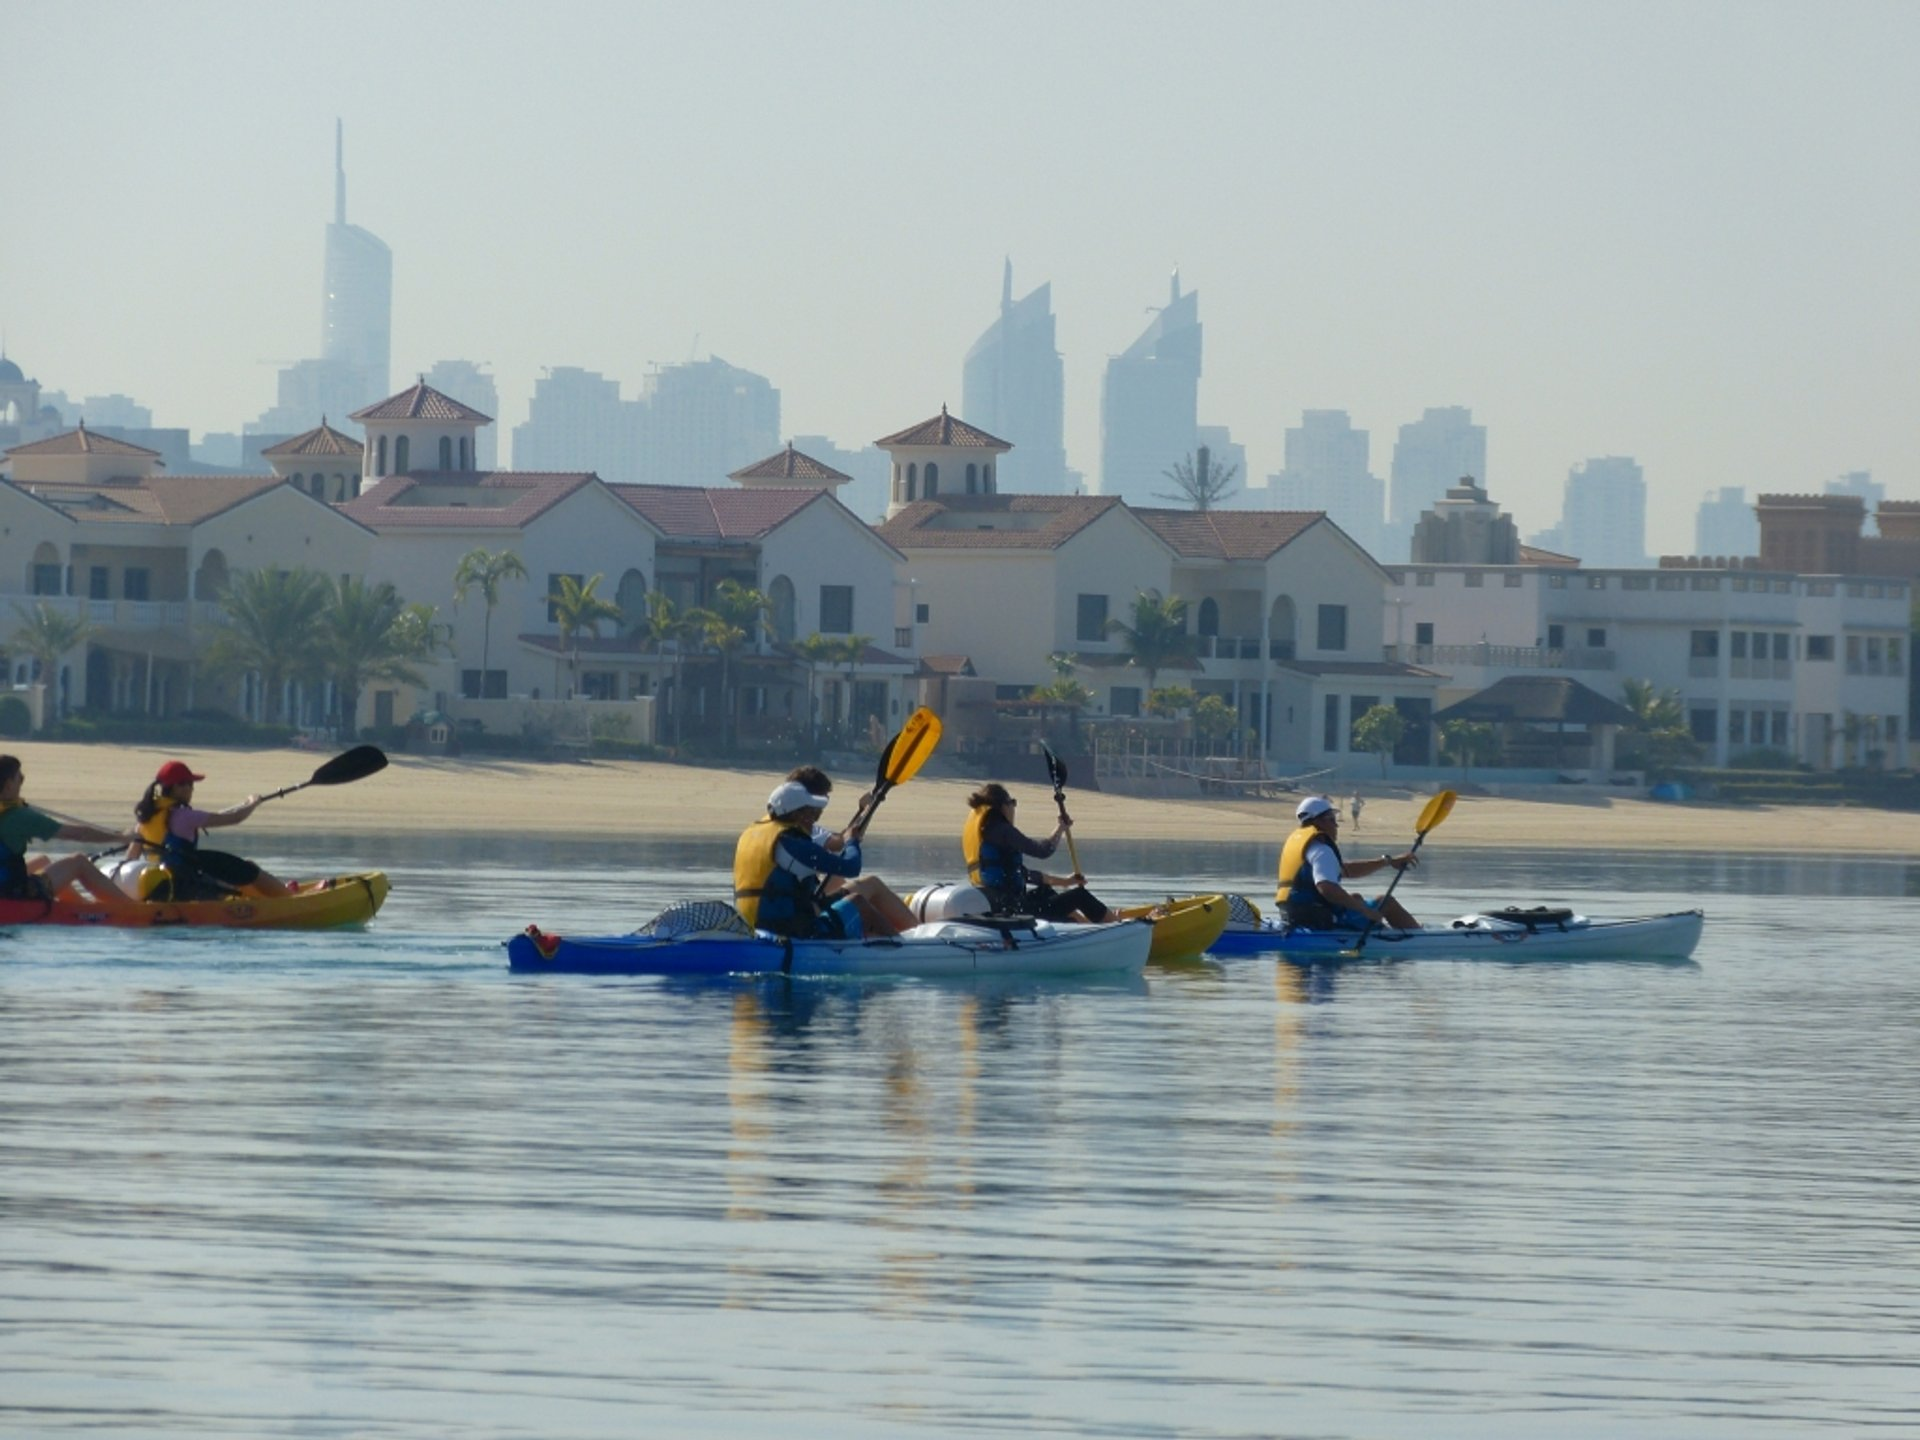 Kayaking and Canoeing in Dubai 2019 - Best Time